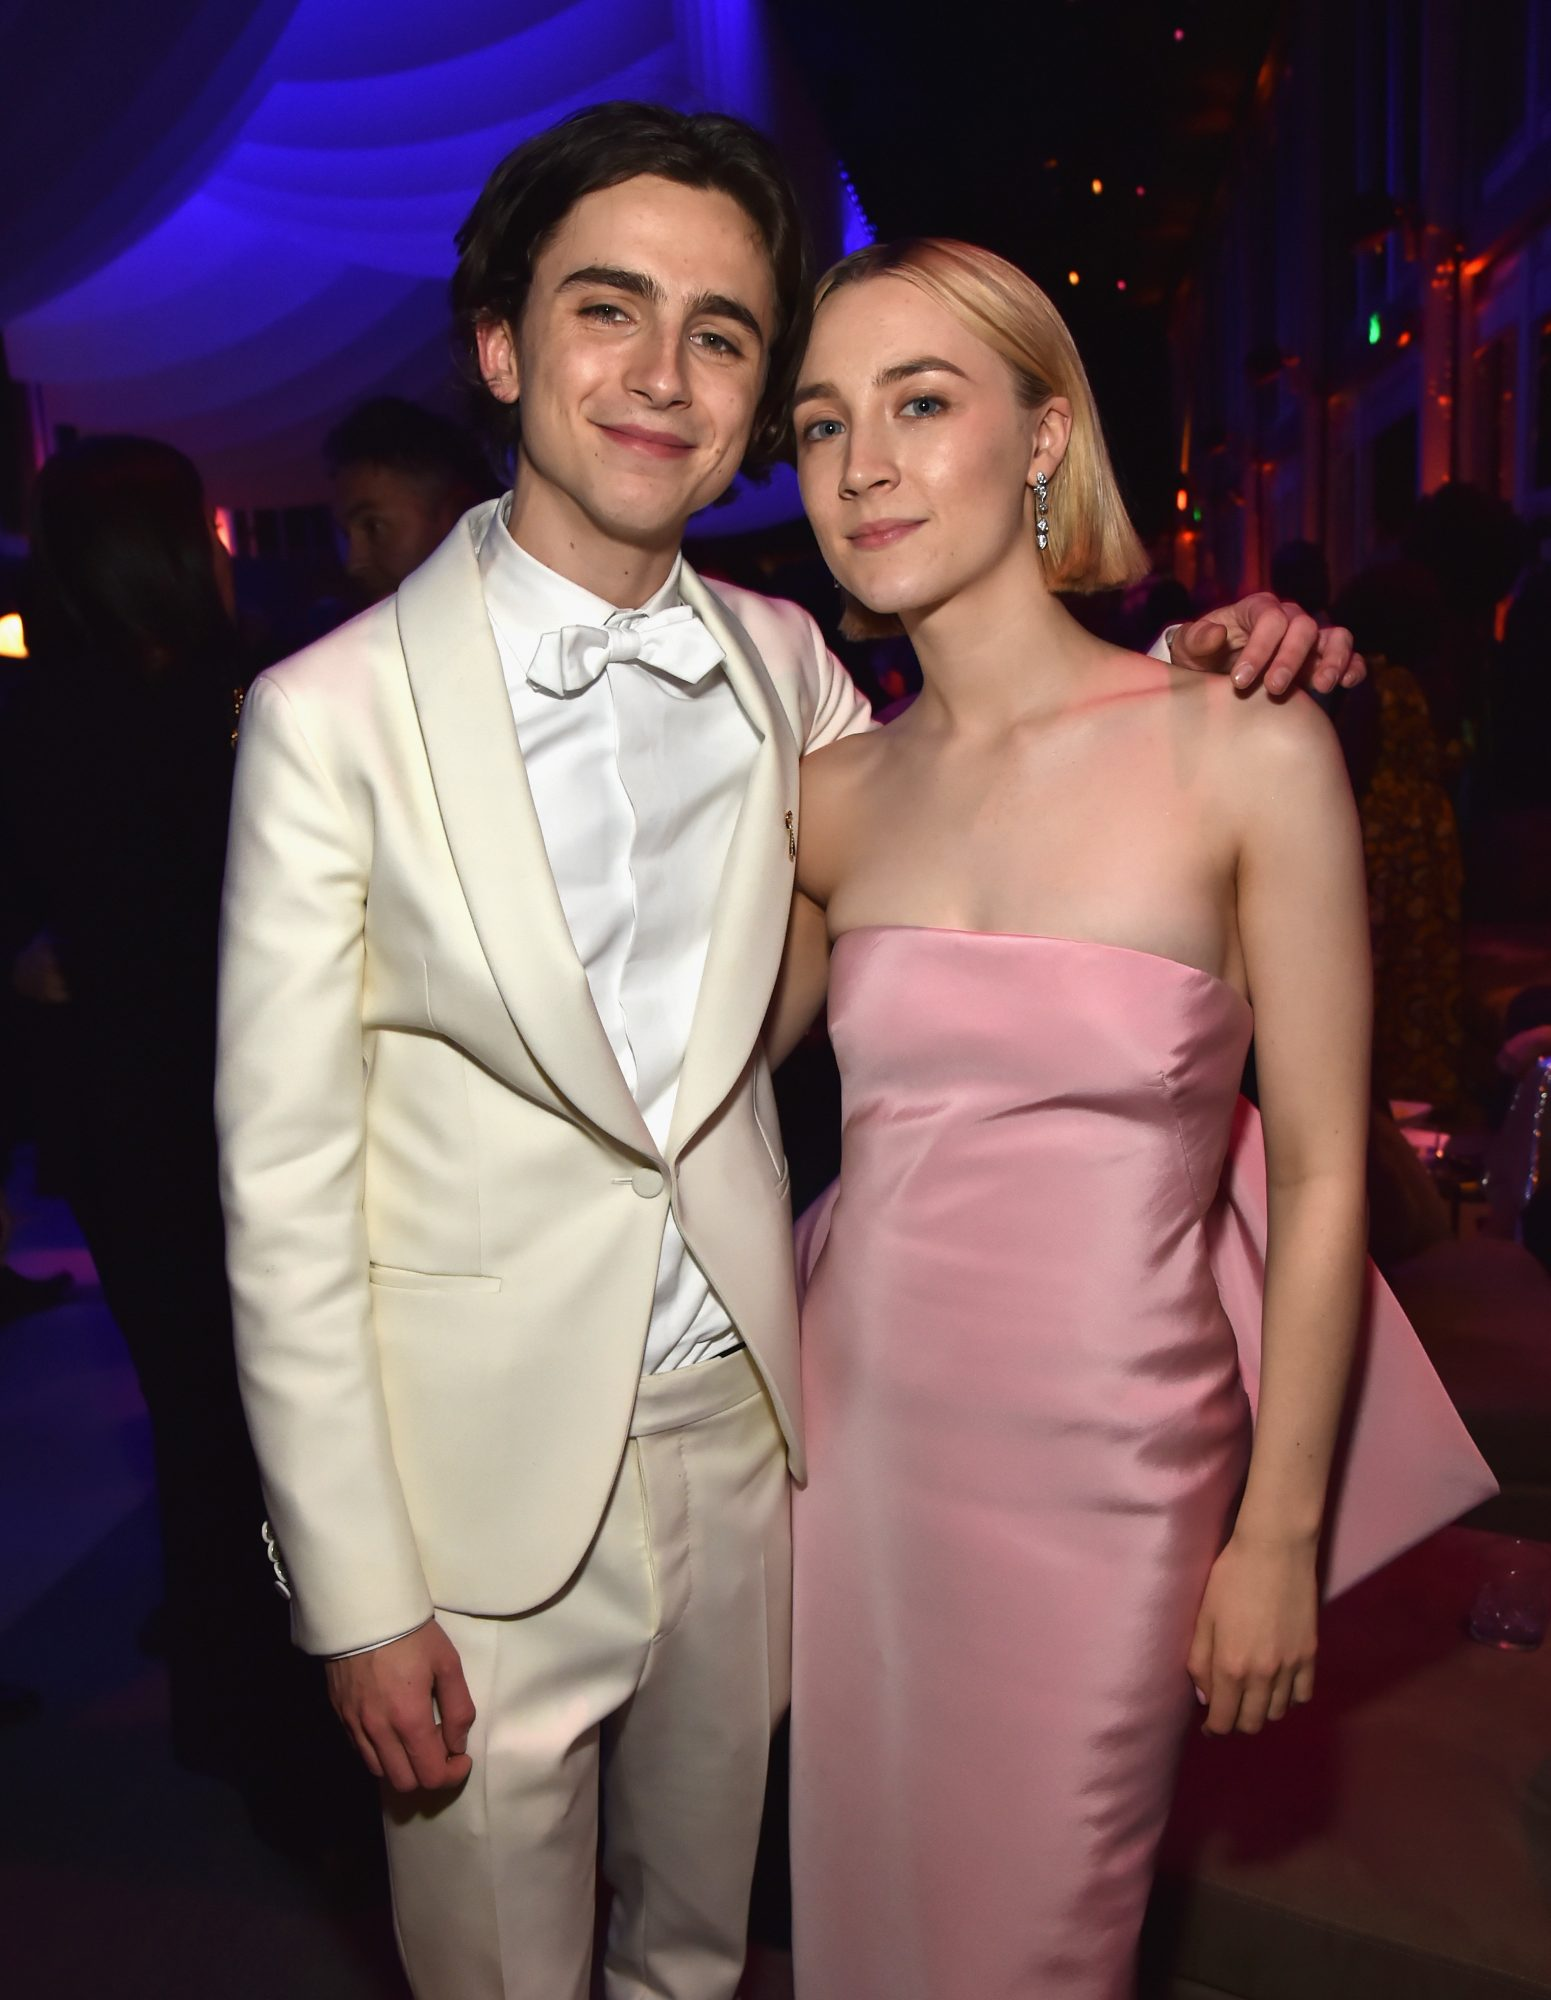 Timothee Chalamet and Saoirse Ronan